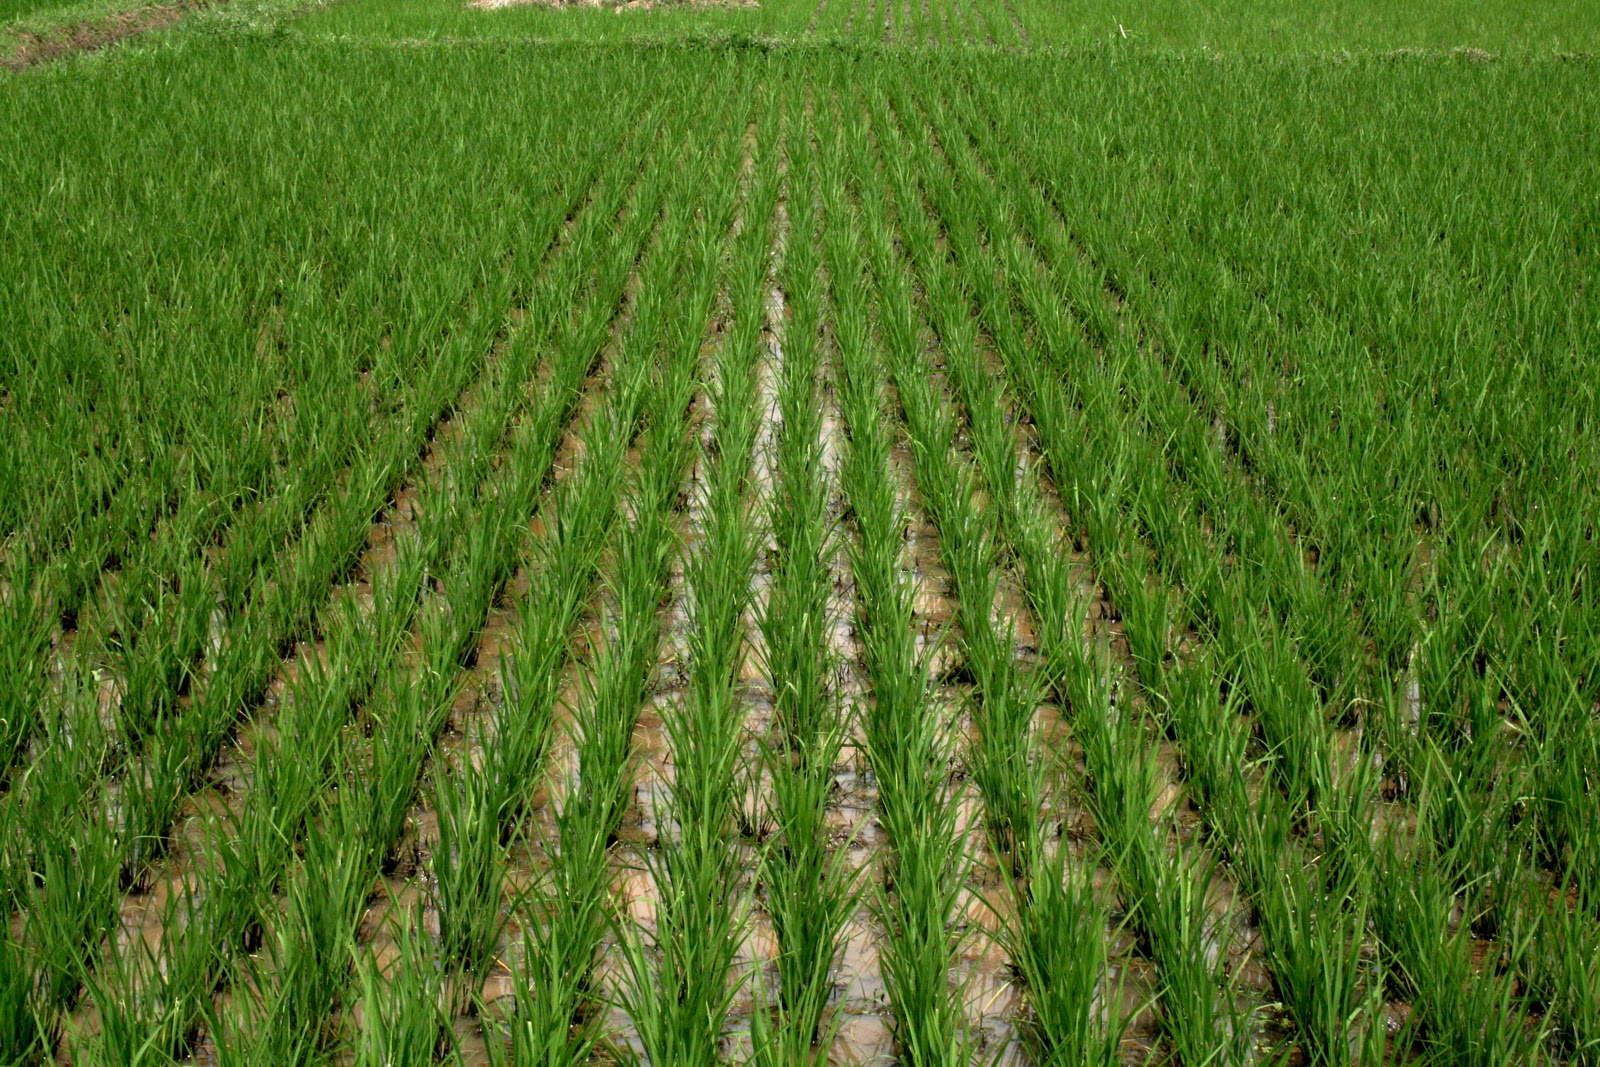 Rice Farmers Loss Millions As Rainstorm Washes 100 Hectares Of Rice Farm